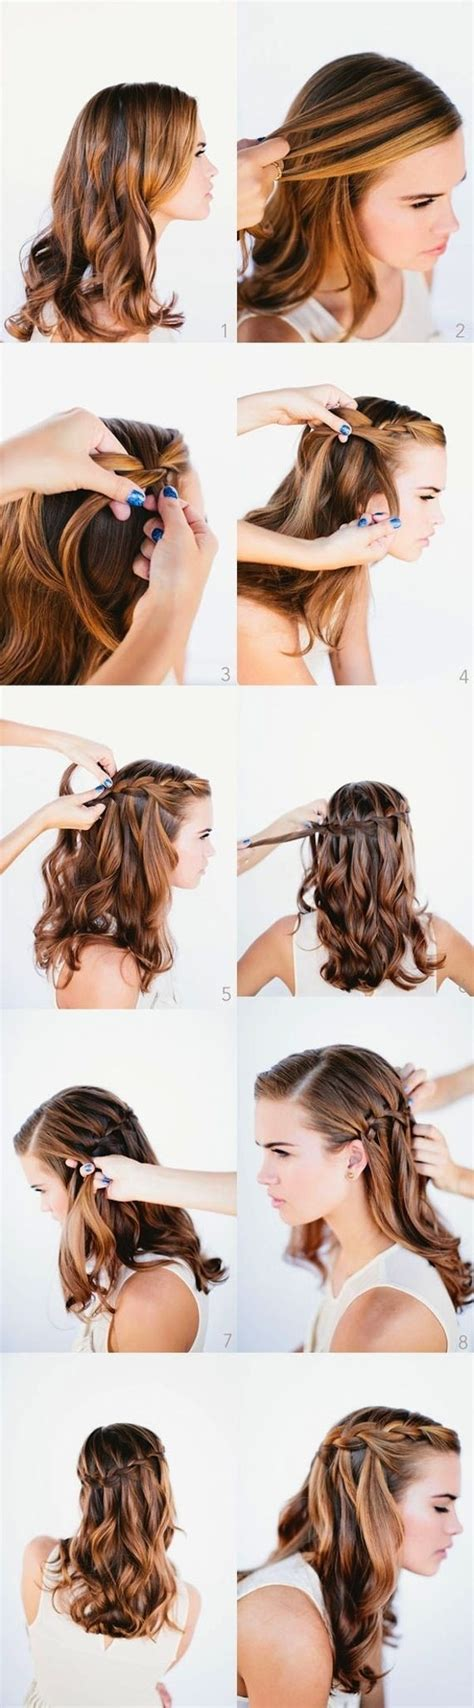 hairstyles prom tutorial 10 best waterfall braids hairstyle ideas for long hair